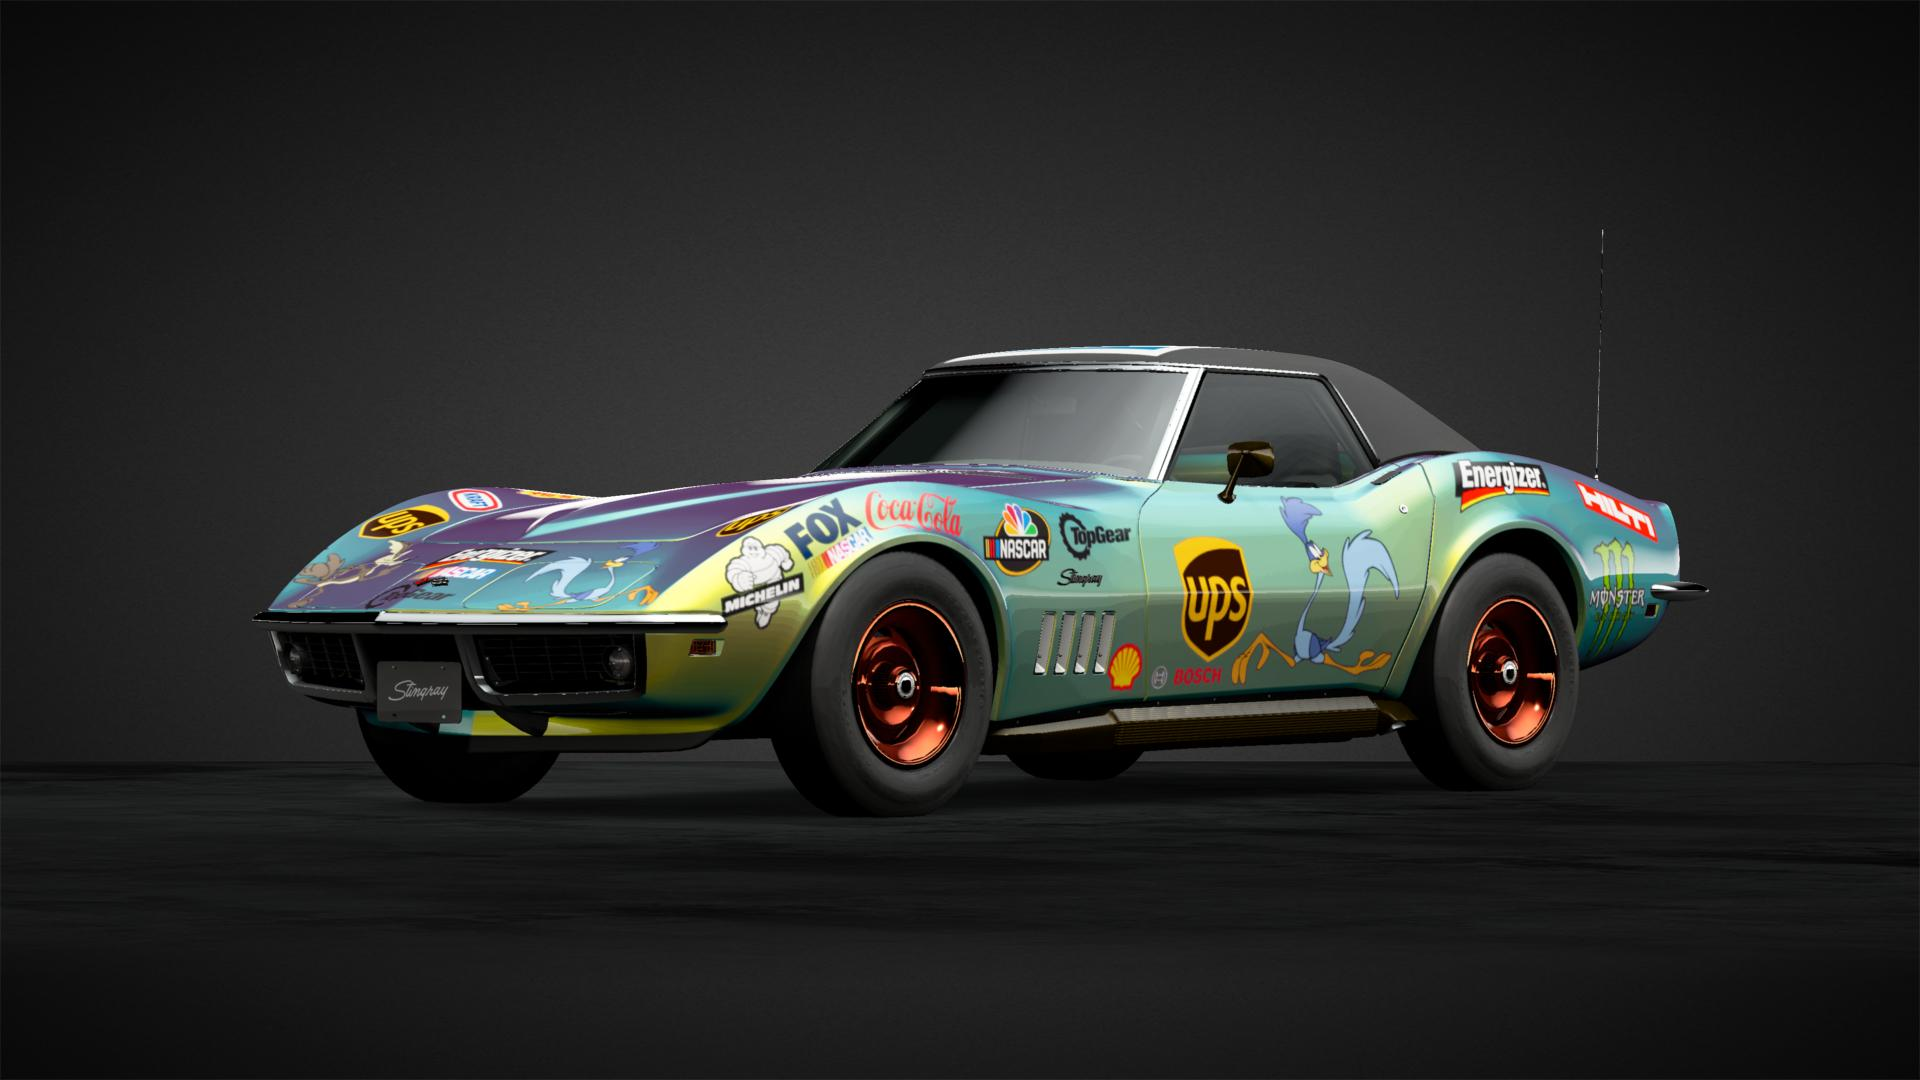 Roadrunner - Car Livery by FrankBlackPepper | Community